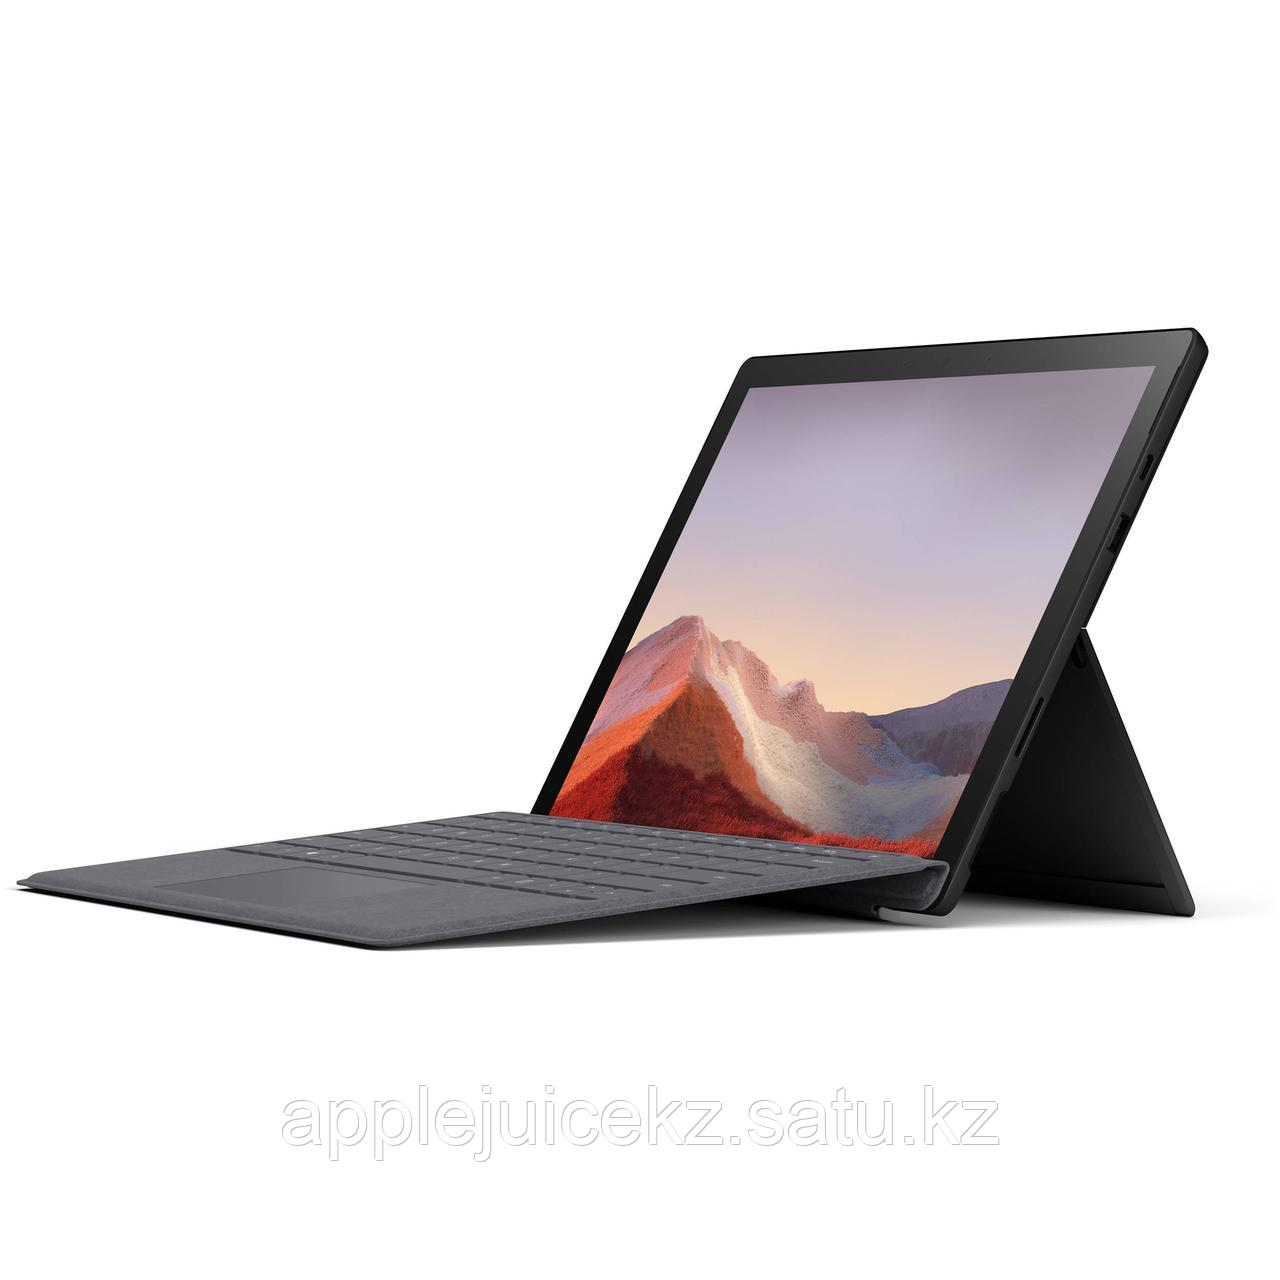 Surface Pro 7 Black, Intel Core i5, 16GB, 256GB